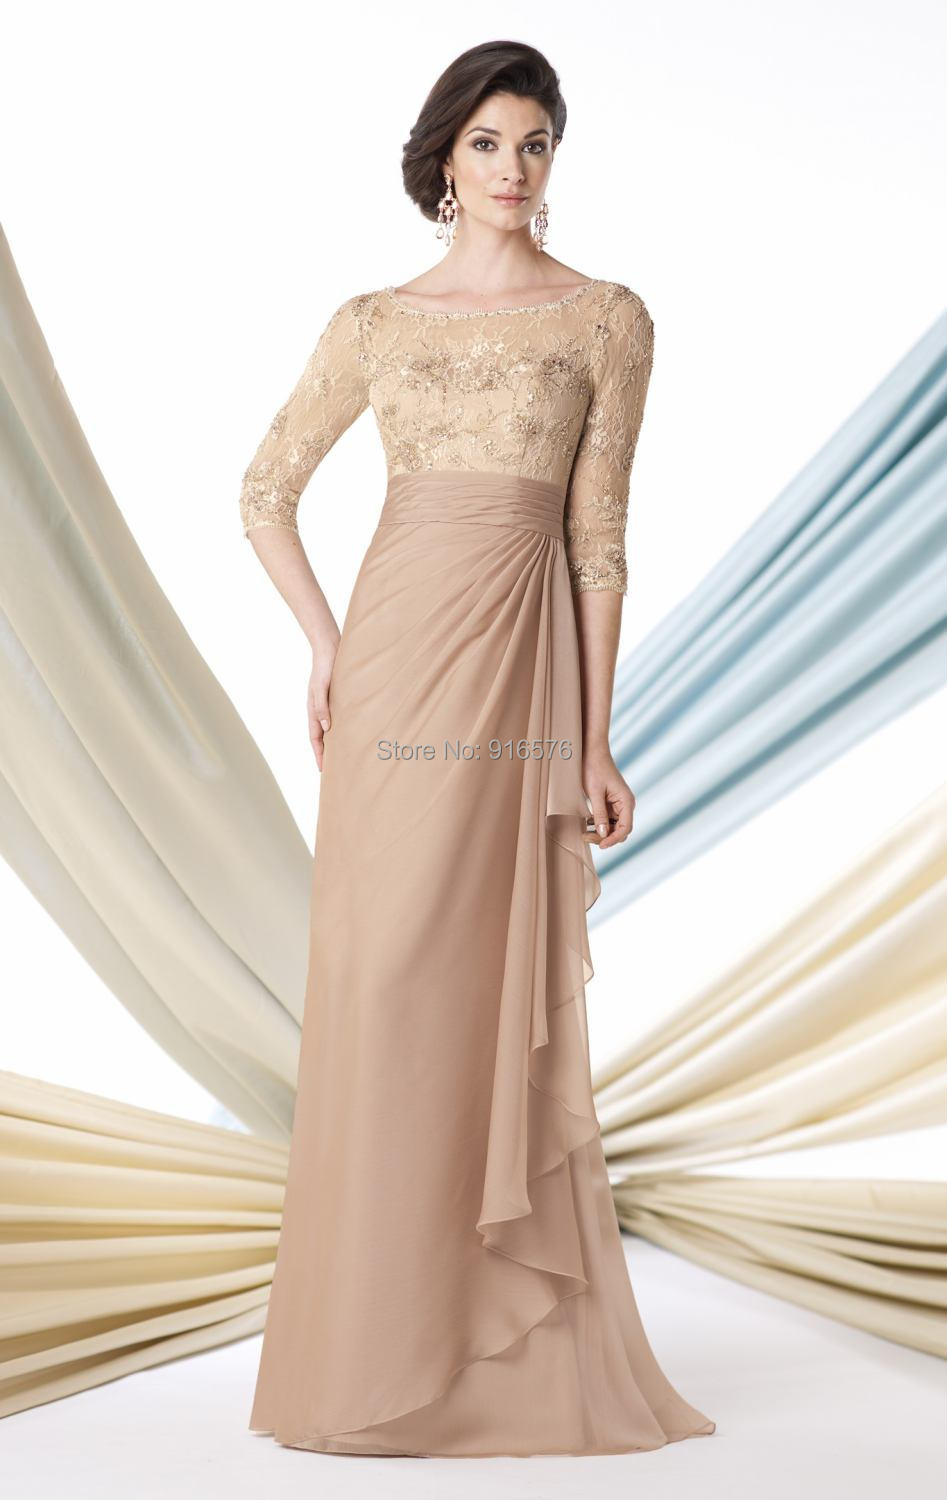 Chiffon Pants Suit A Line Wedding Dresses Scoop Neckline Women Gown ...